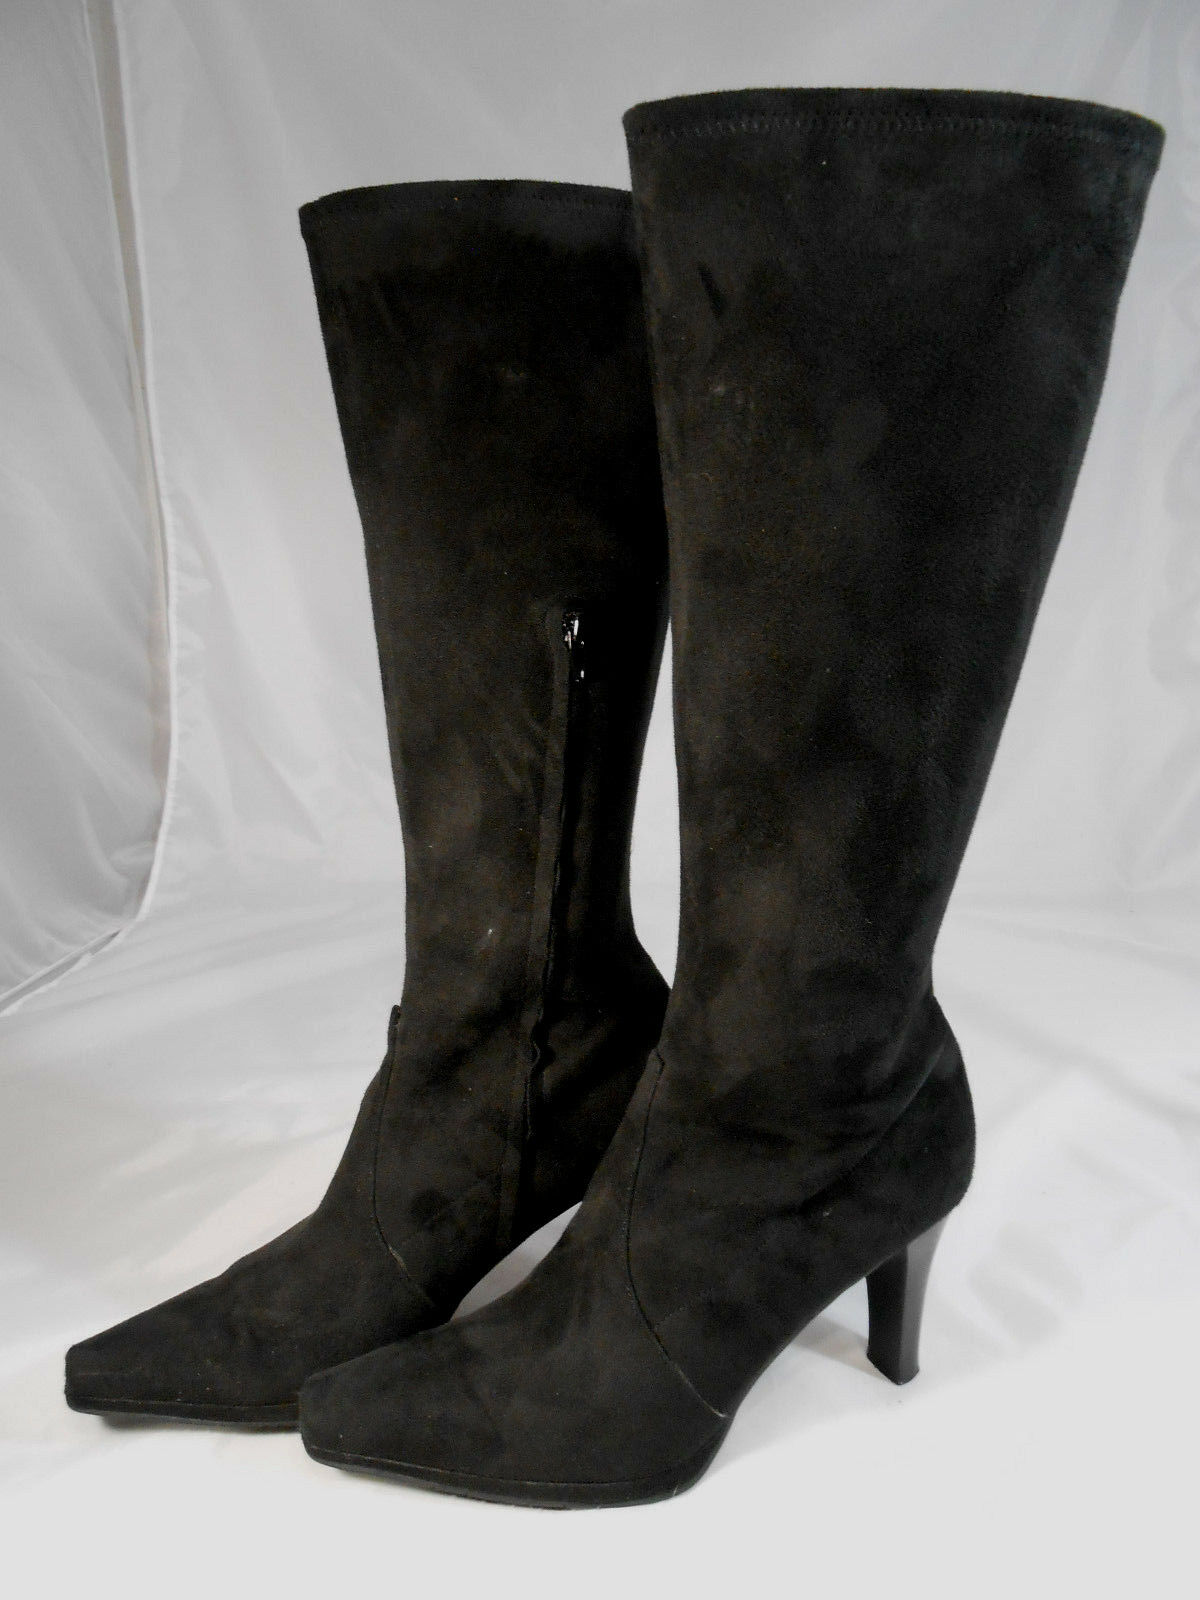 Worthington Womens Jackie Size 8.5 M Black Suede Knee High Stiletto Heel Boots